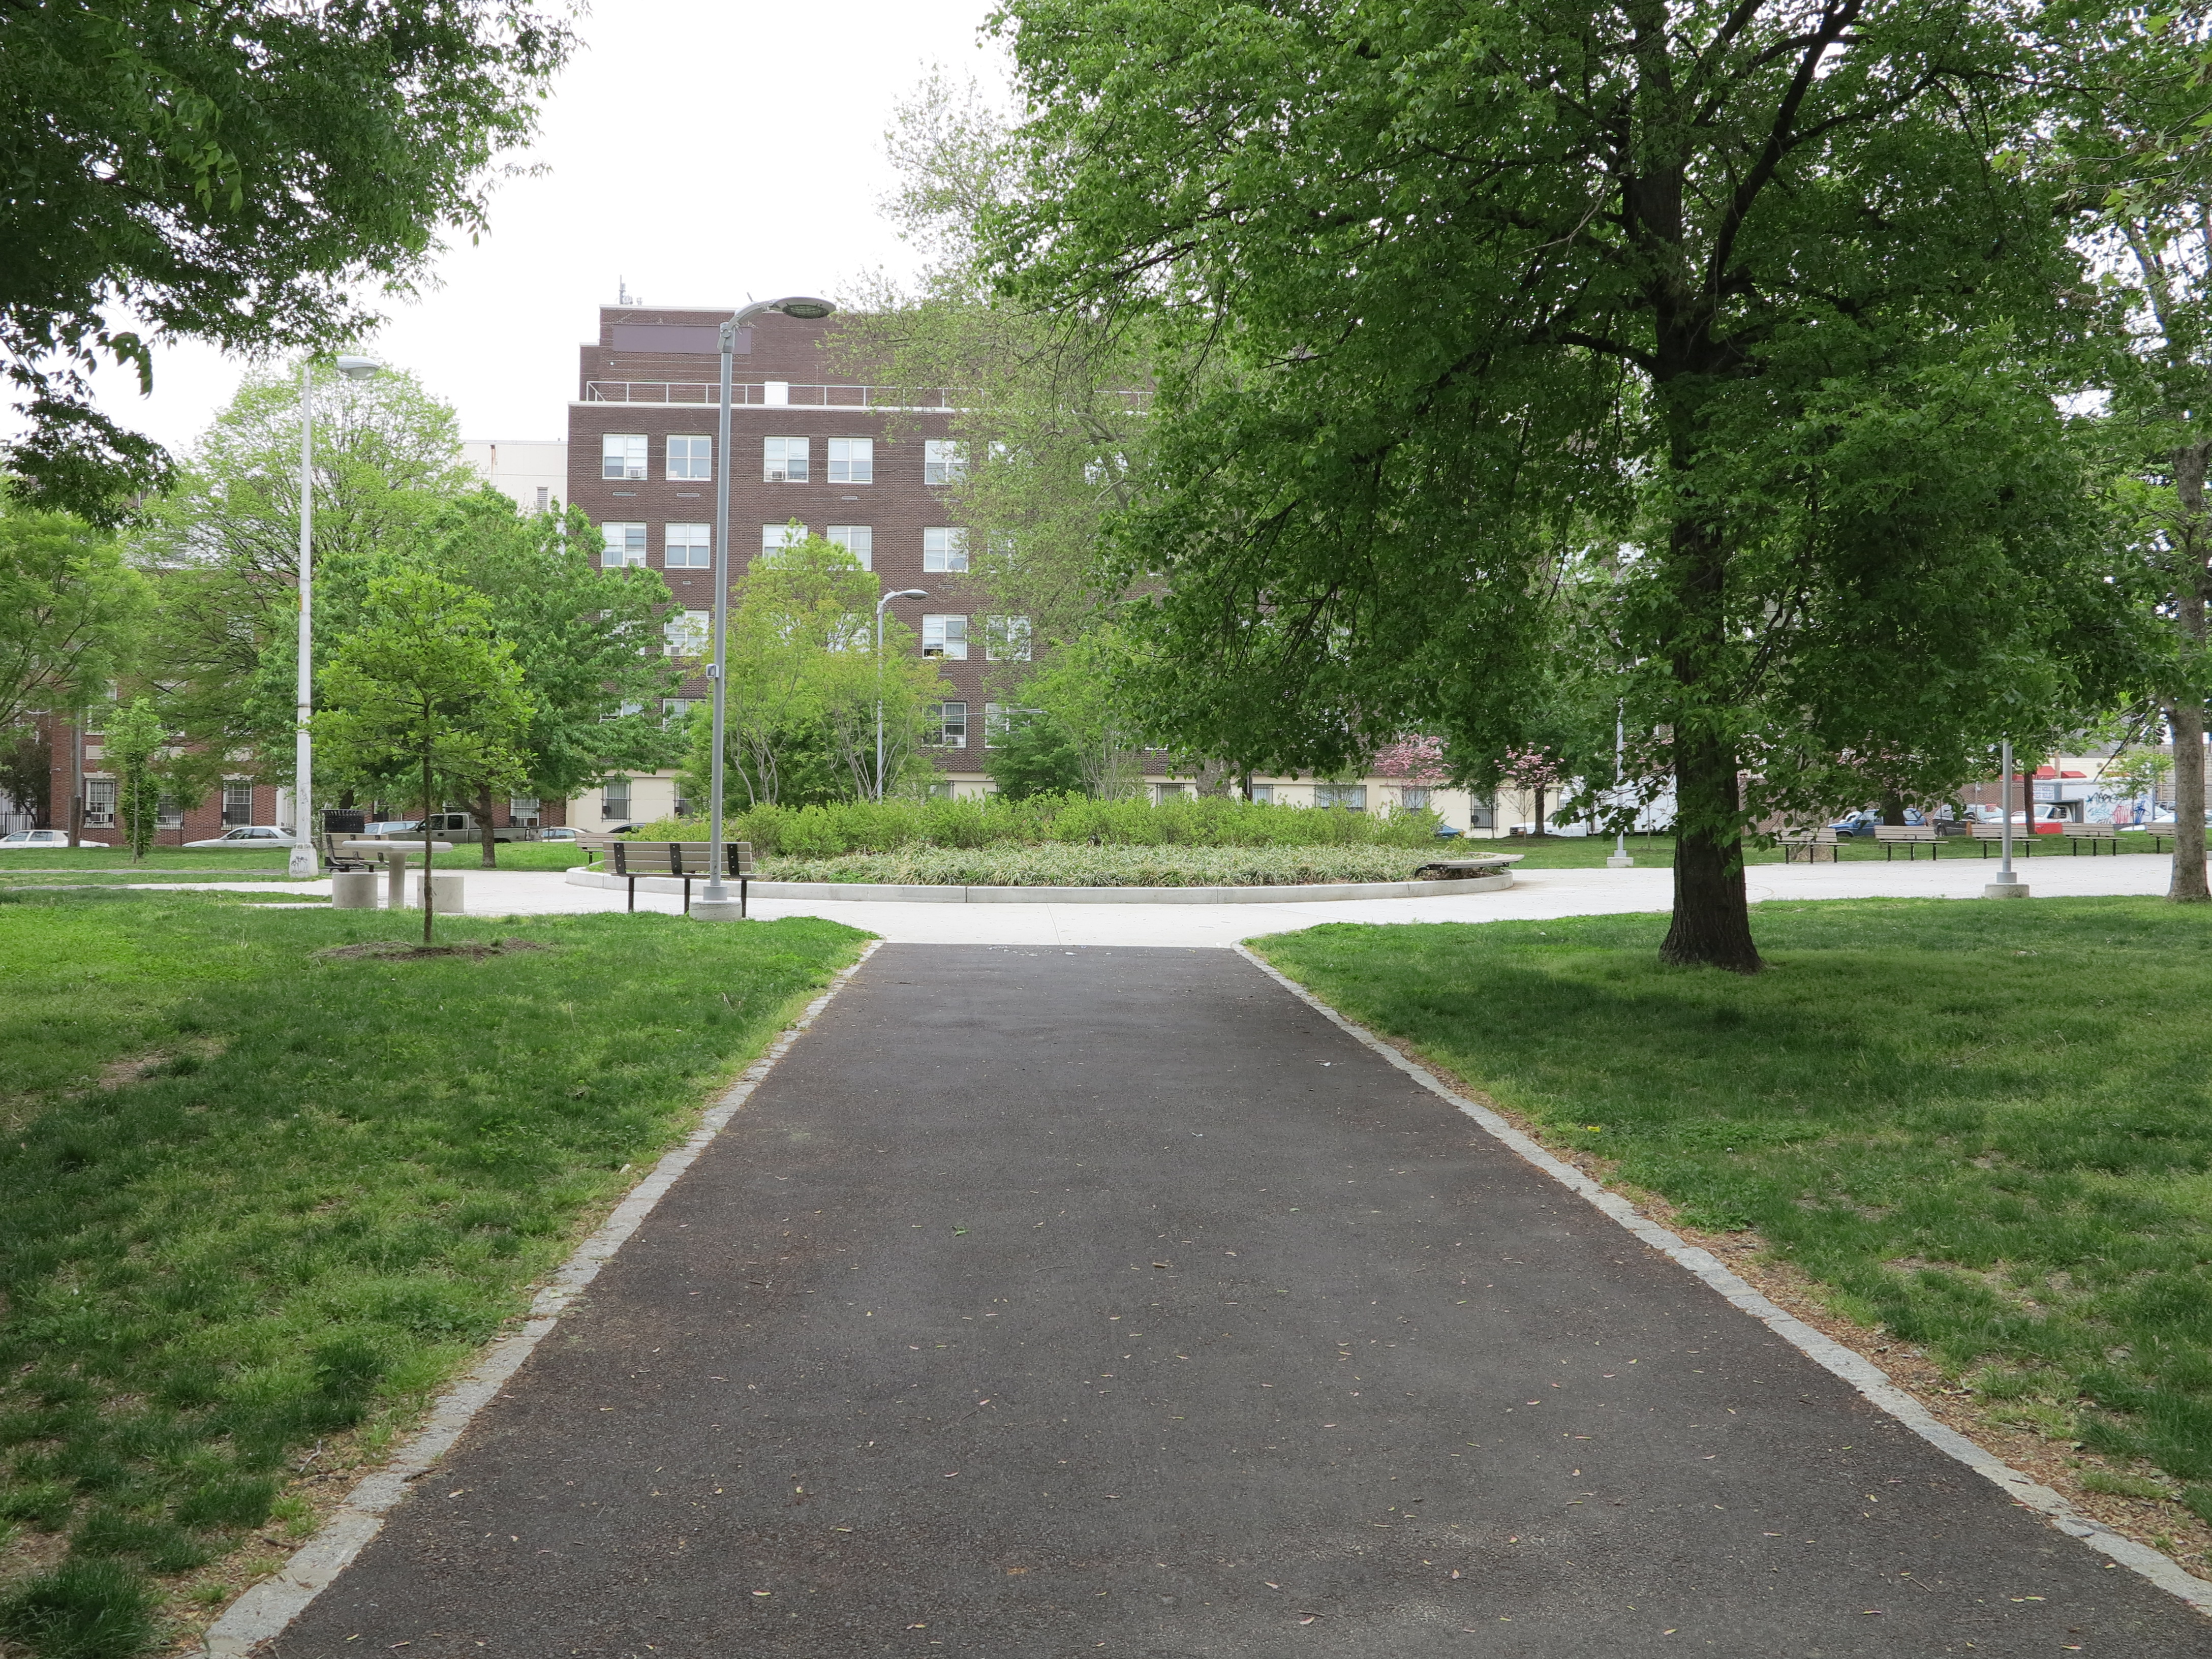 New walkways and central plantings in Fairhill Square